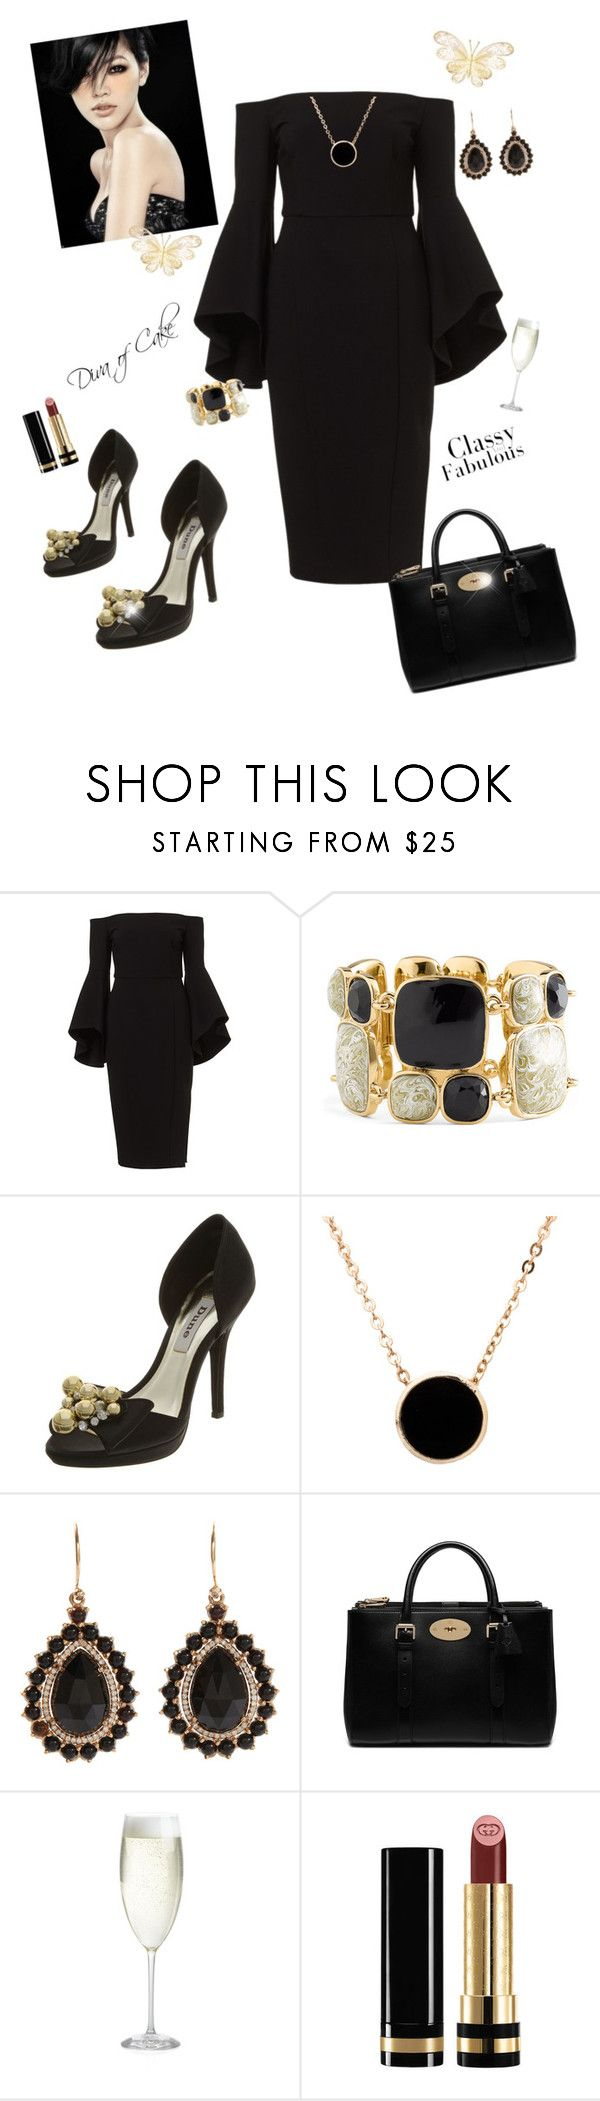 Diva classy and Fabulous   black and gold by Diva of Cake featuring mode, Dune, Mulberry, Irene Neuwirth, Kate Spade, American Apparel, Gucci and Crate and Barrel